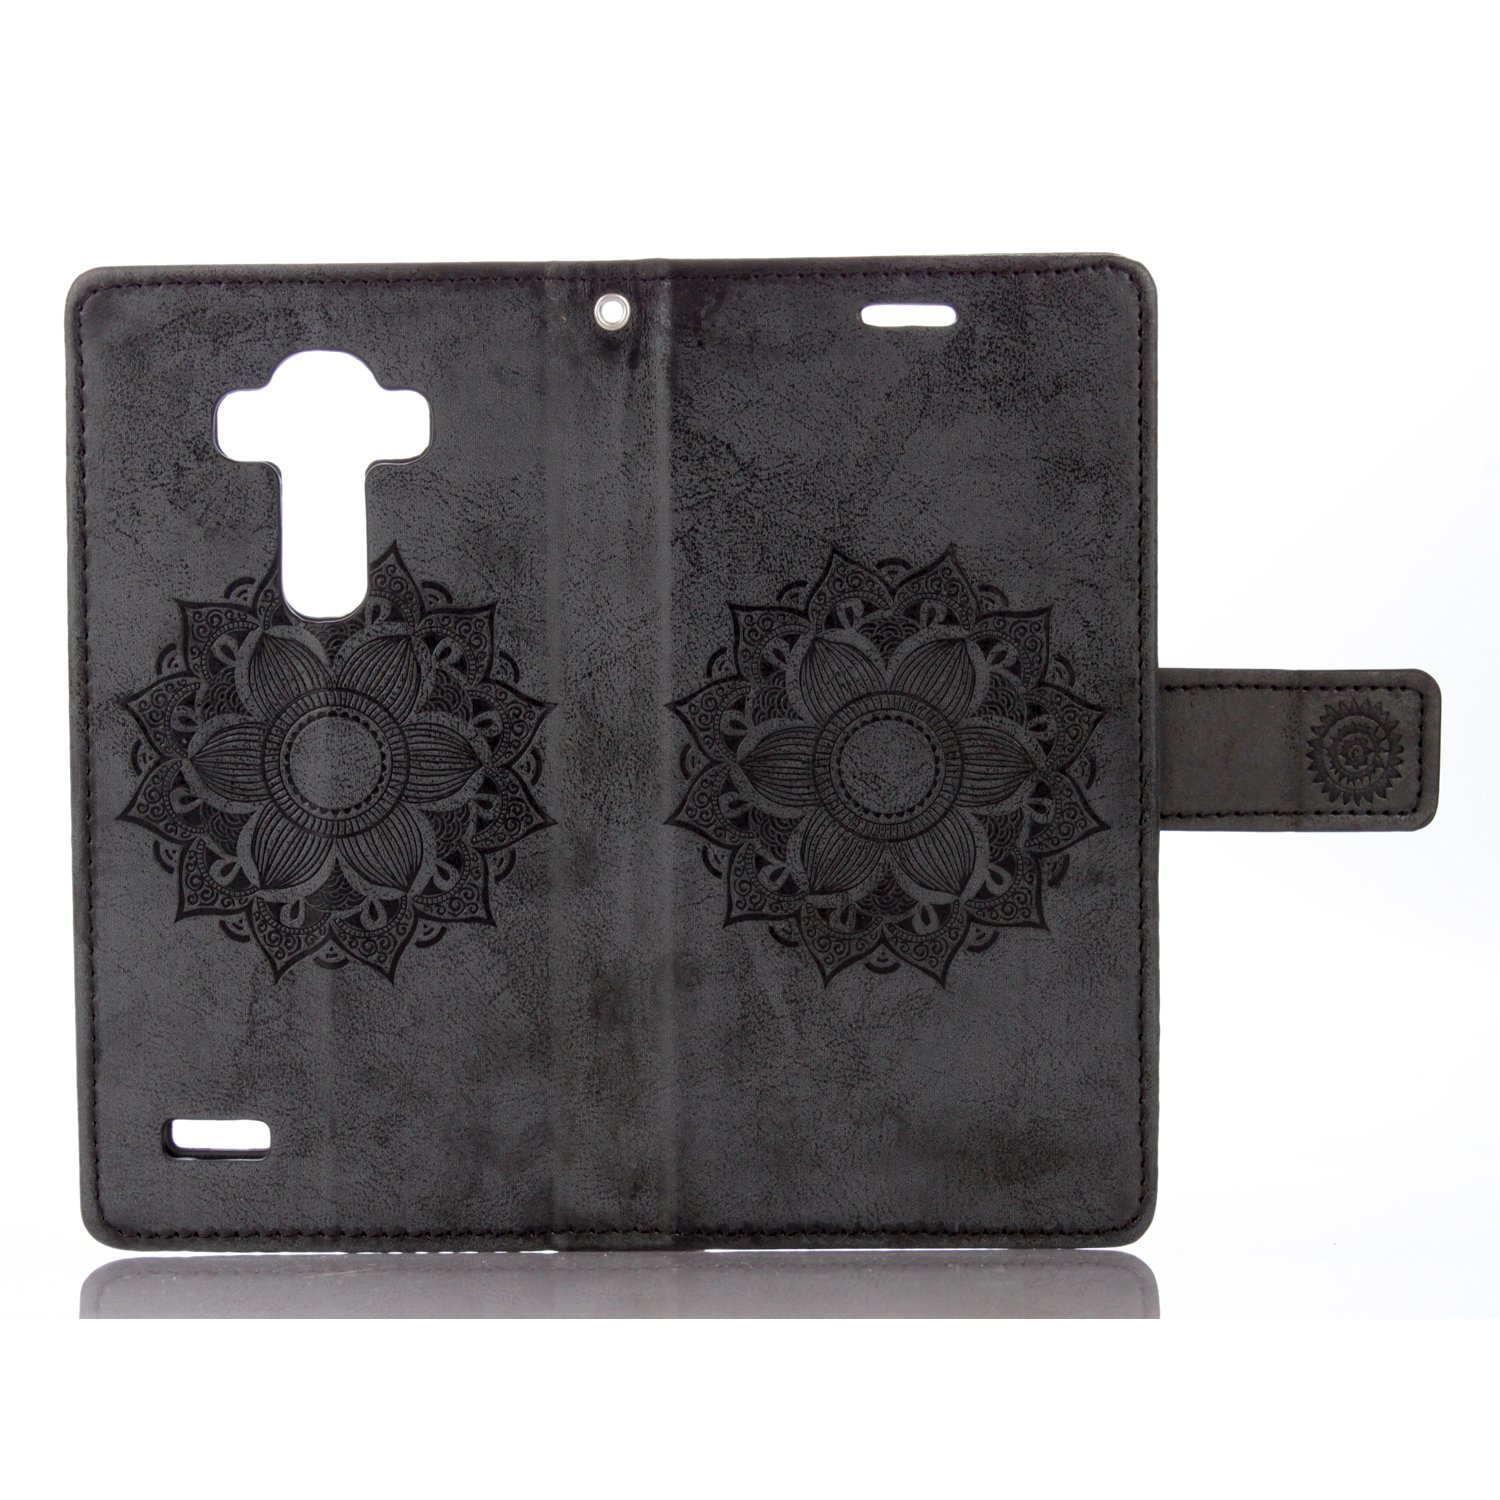 BtDuck Leather Solid Color Case LG G4 Suitable for Science And Engineering  Male Introverted Humor Good Match Black Mandala Flower PU Embossed